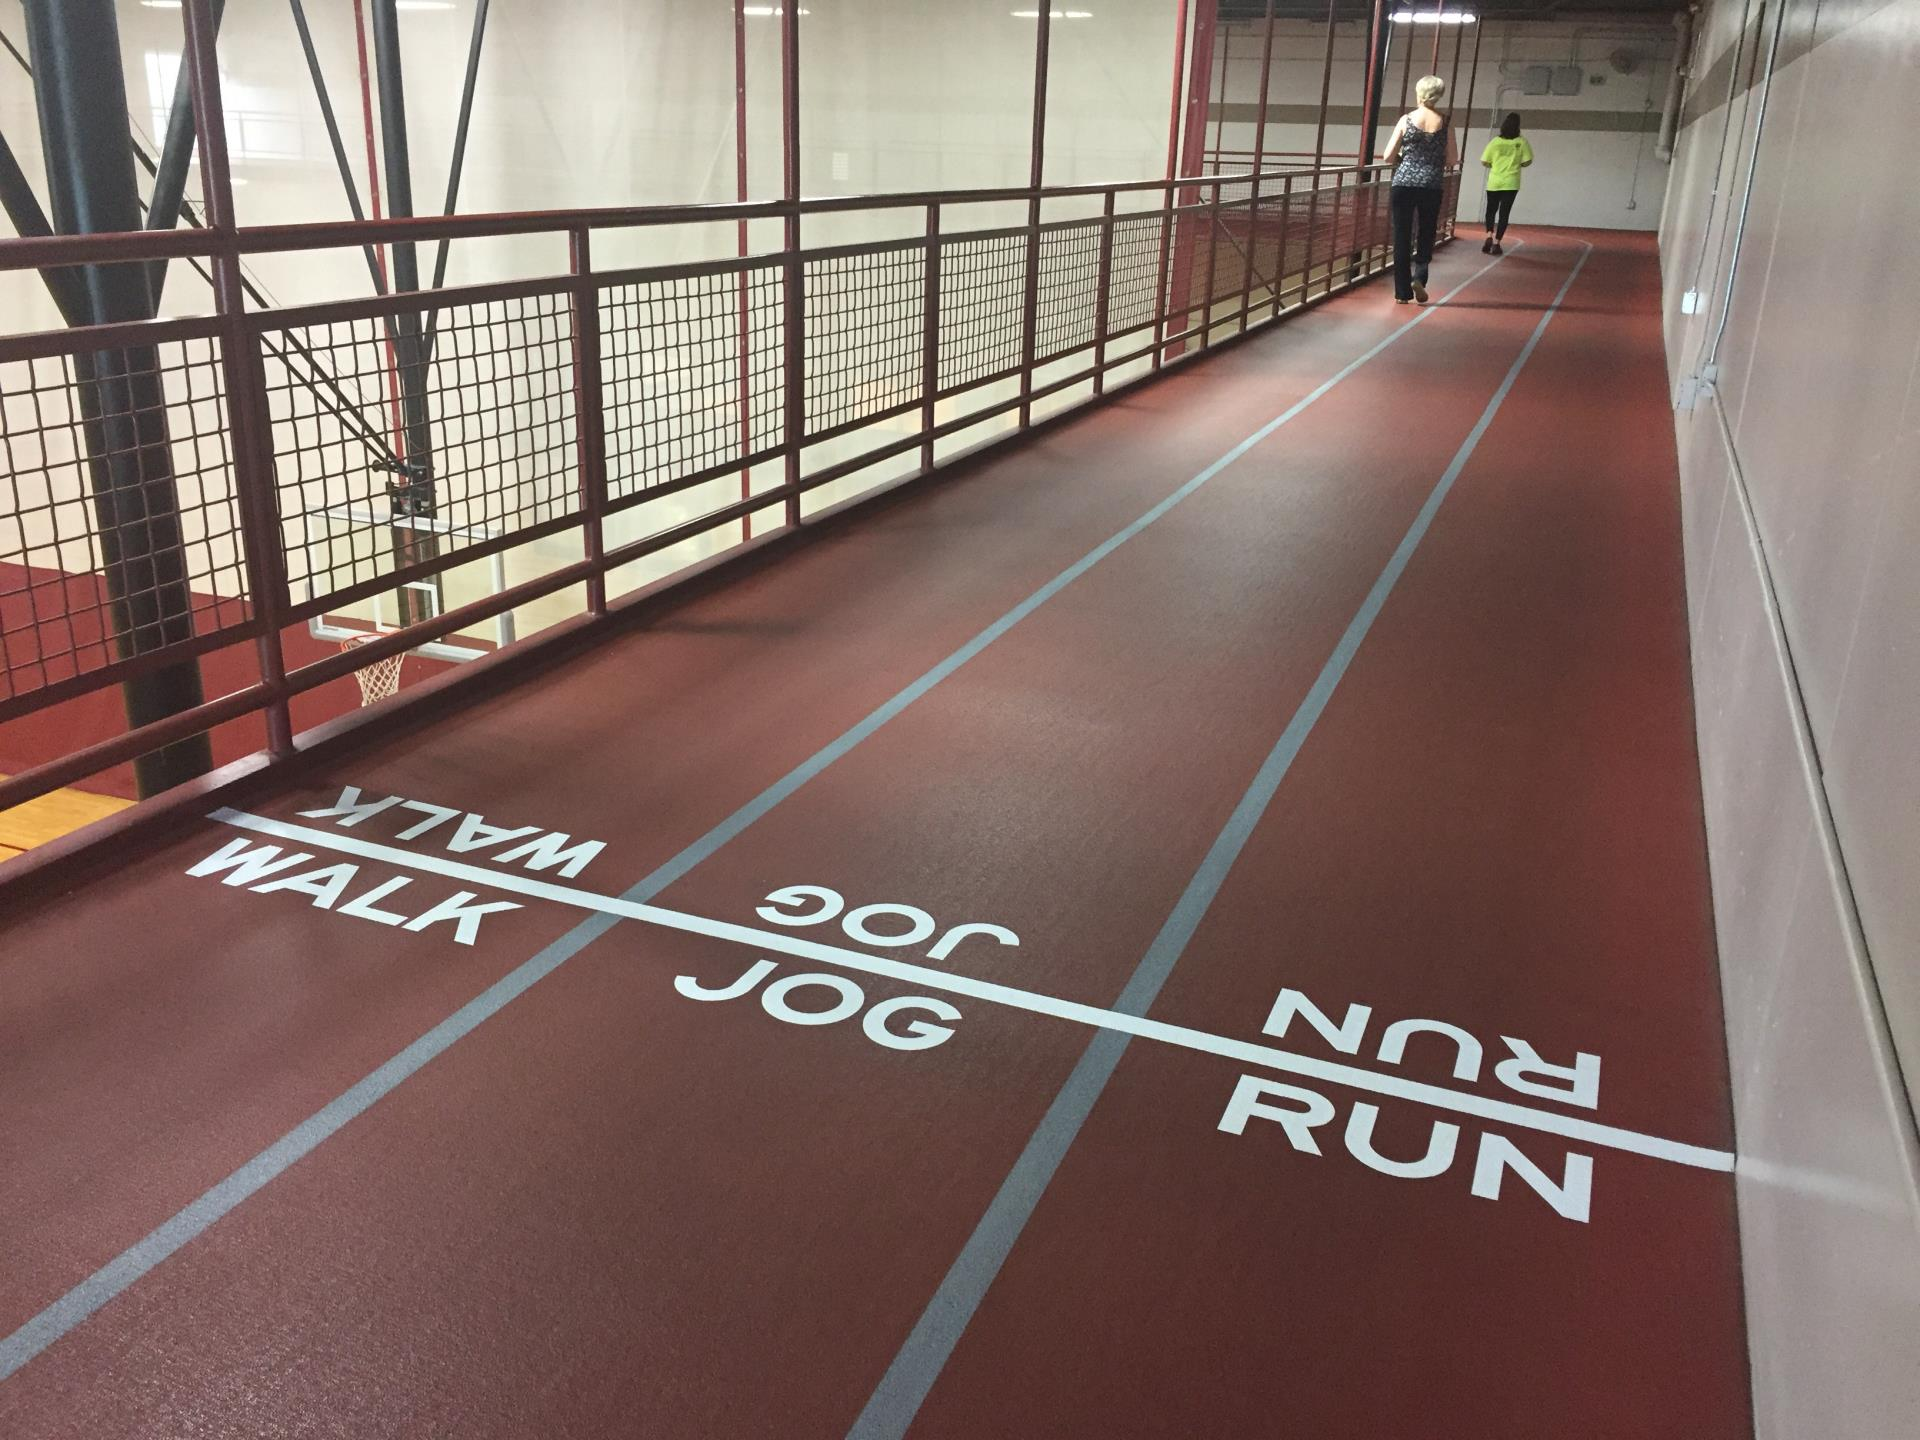 Words on walking track